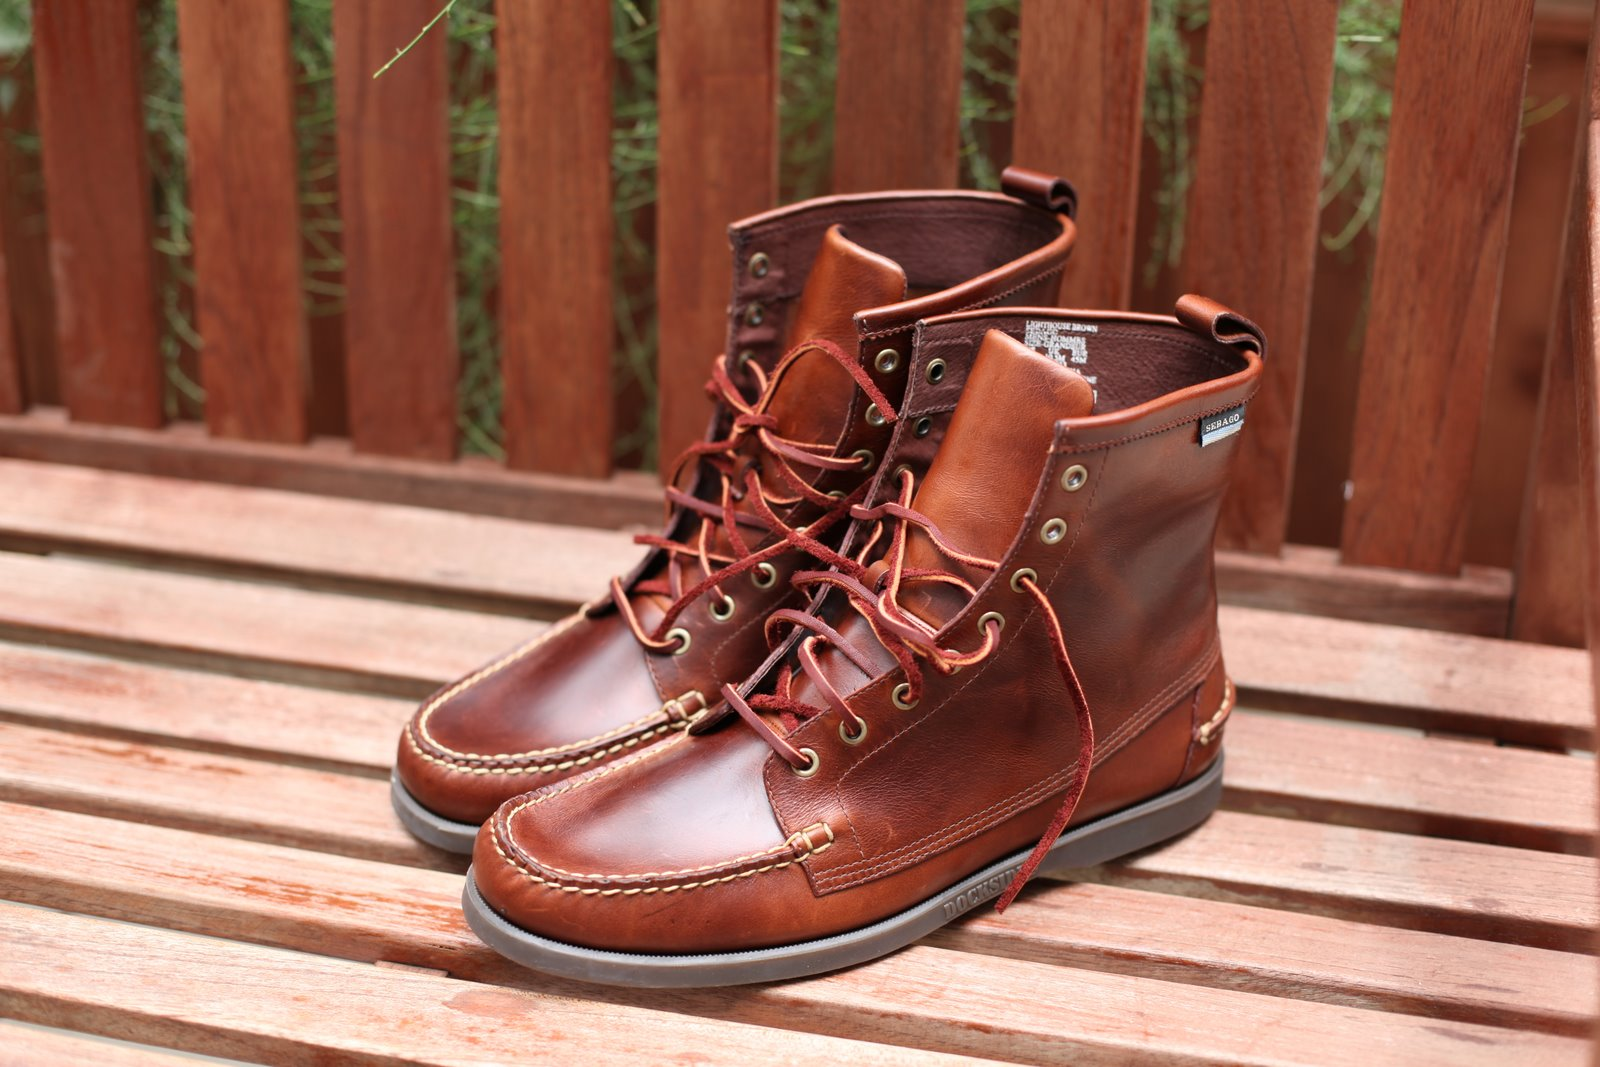 Mens Brown Boots Fashion Hkfm8TiF